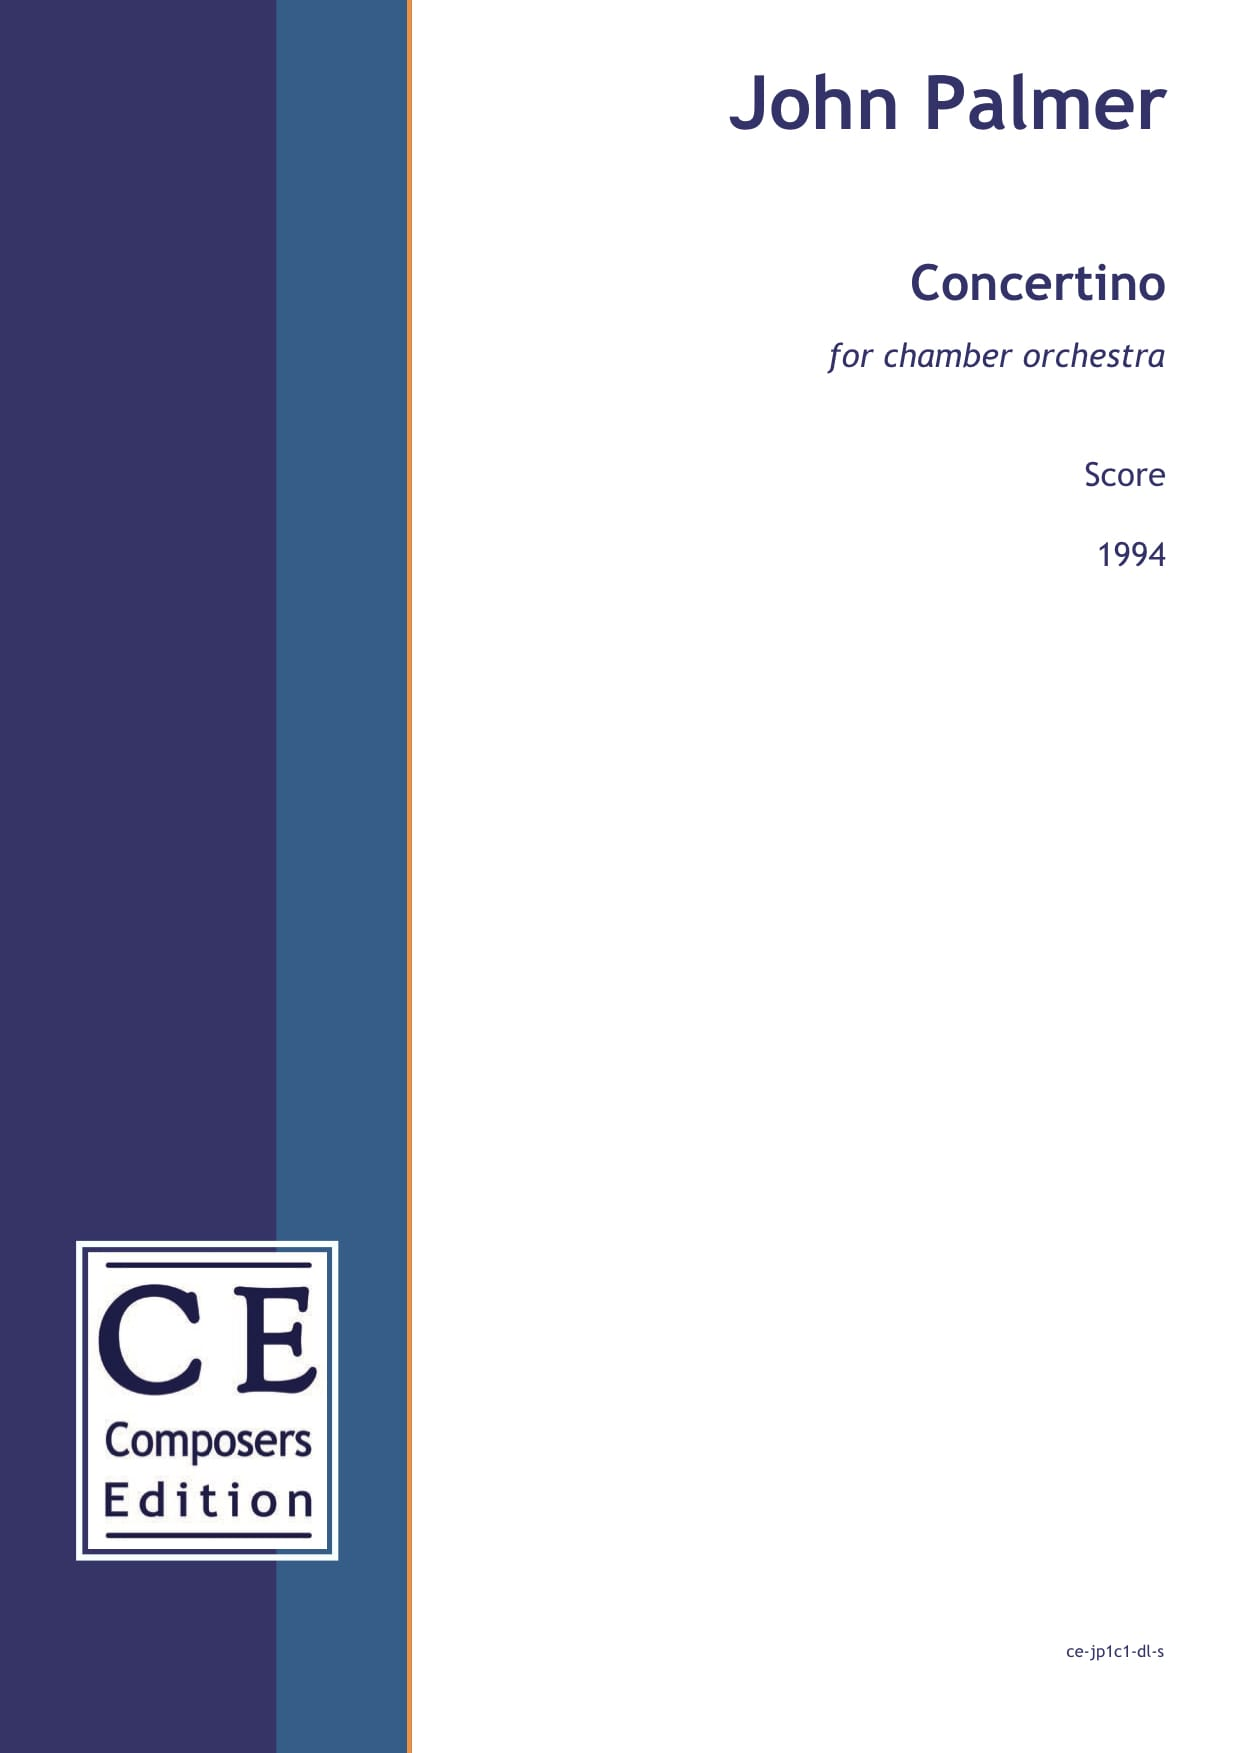 John Palmer: Concertino for chamber orchestra